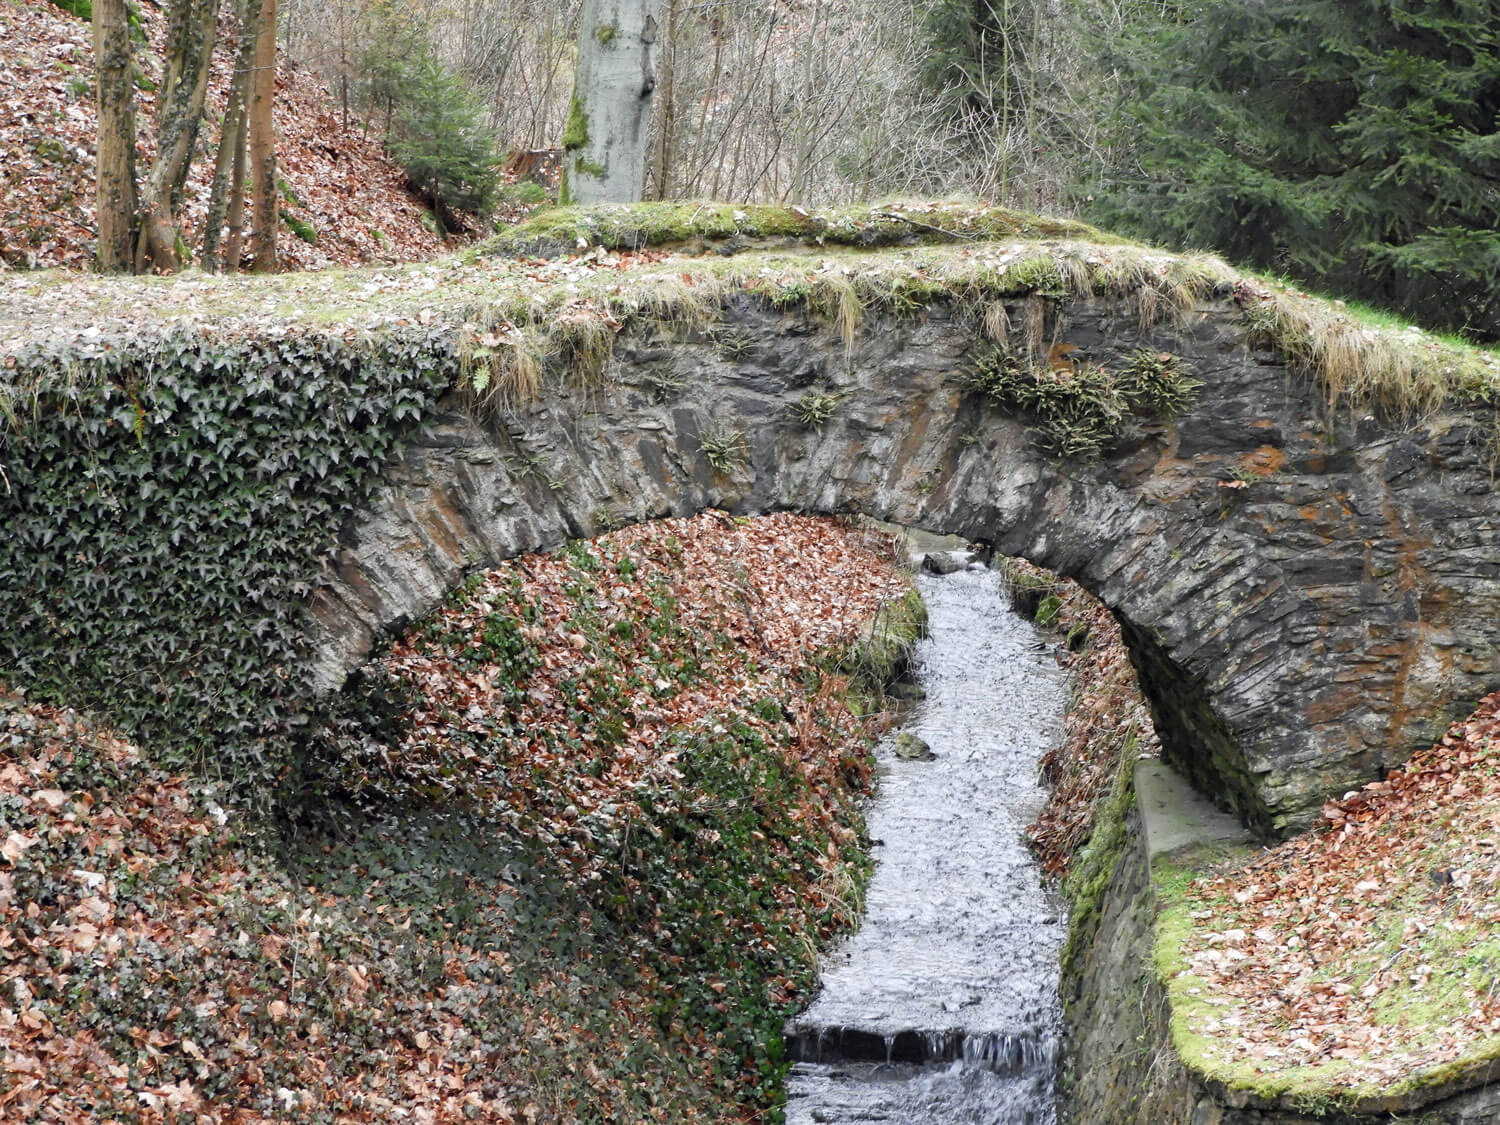 czech-cesky-sternberk-castle-bridge-stream.jpg